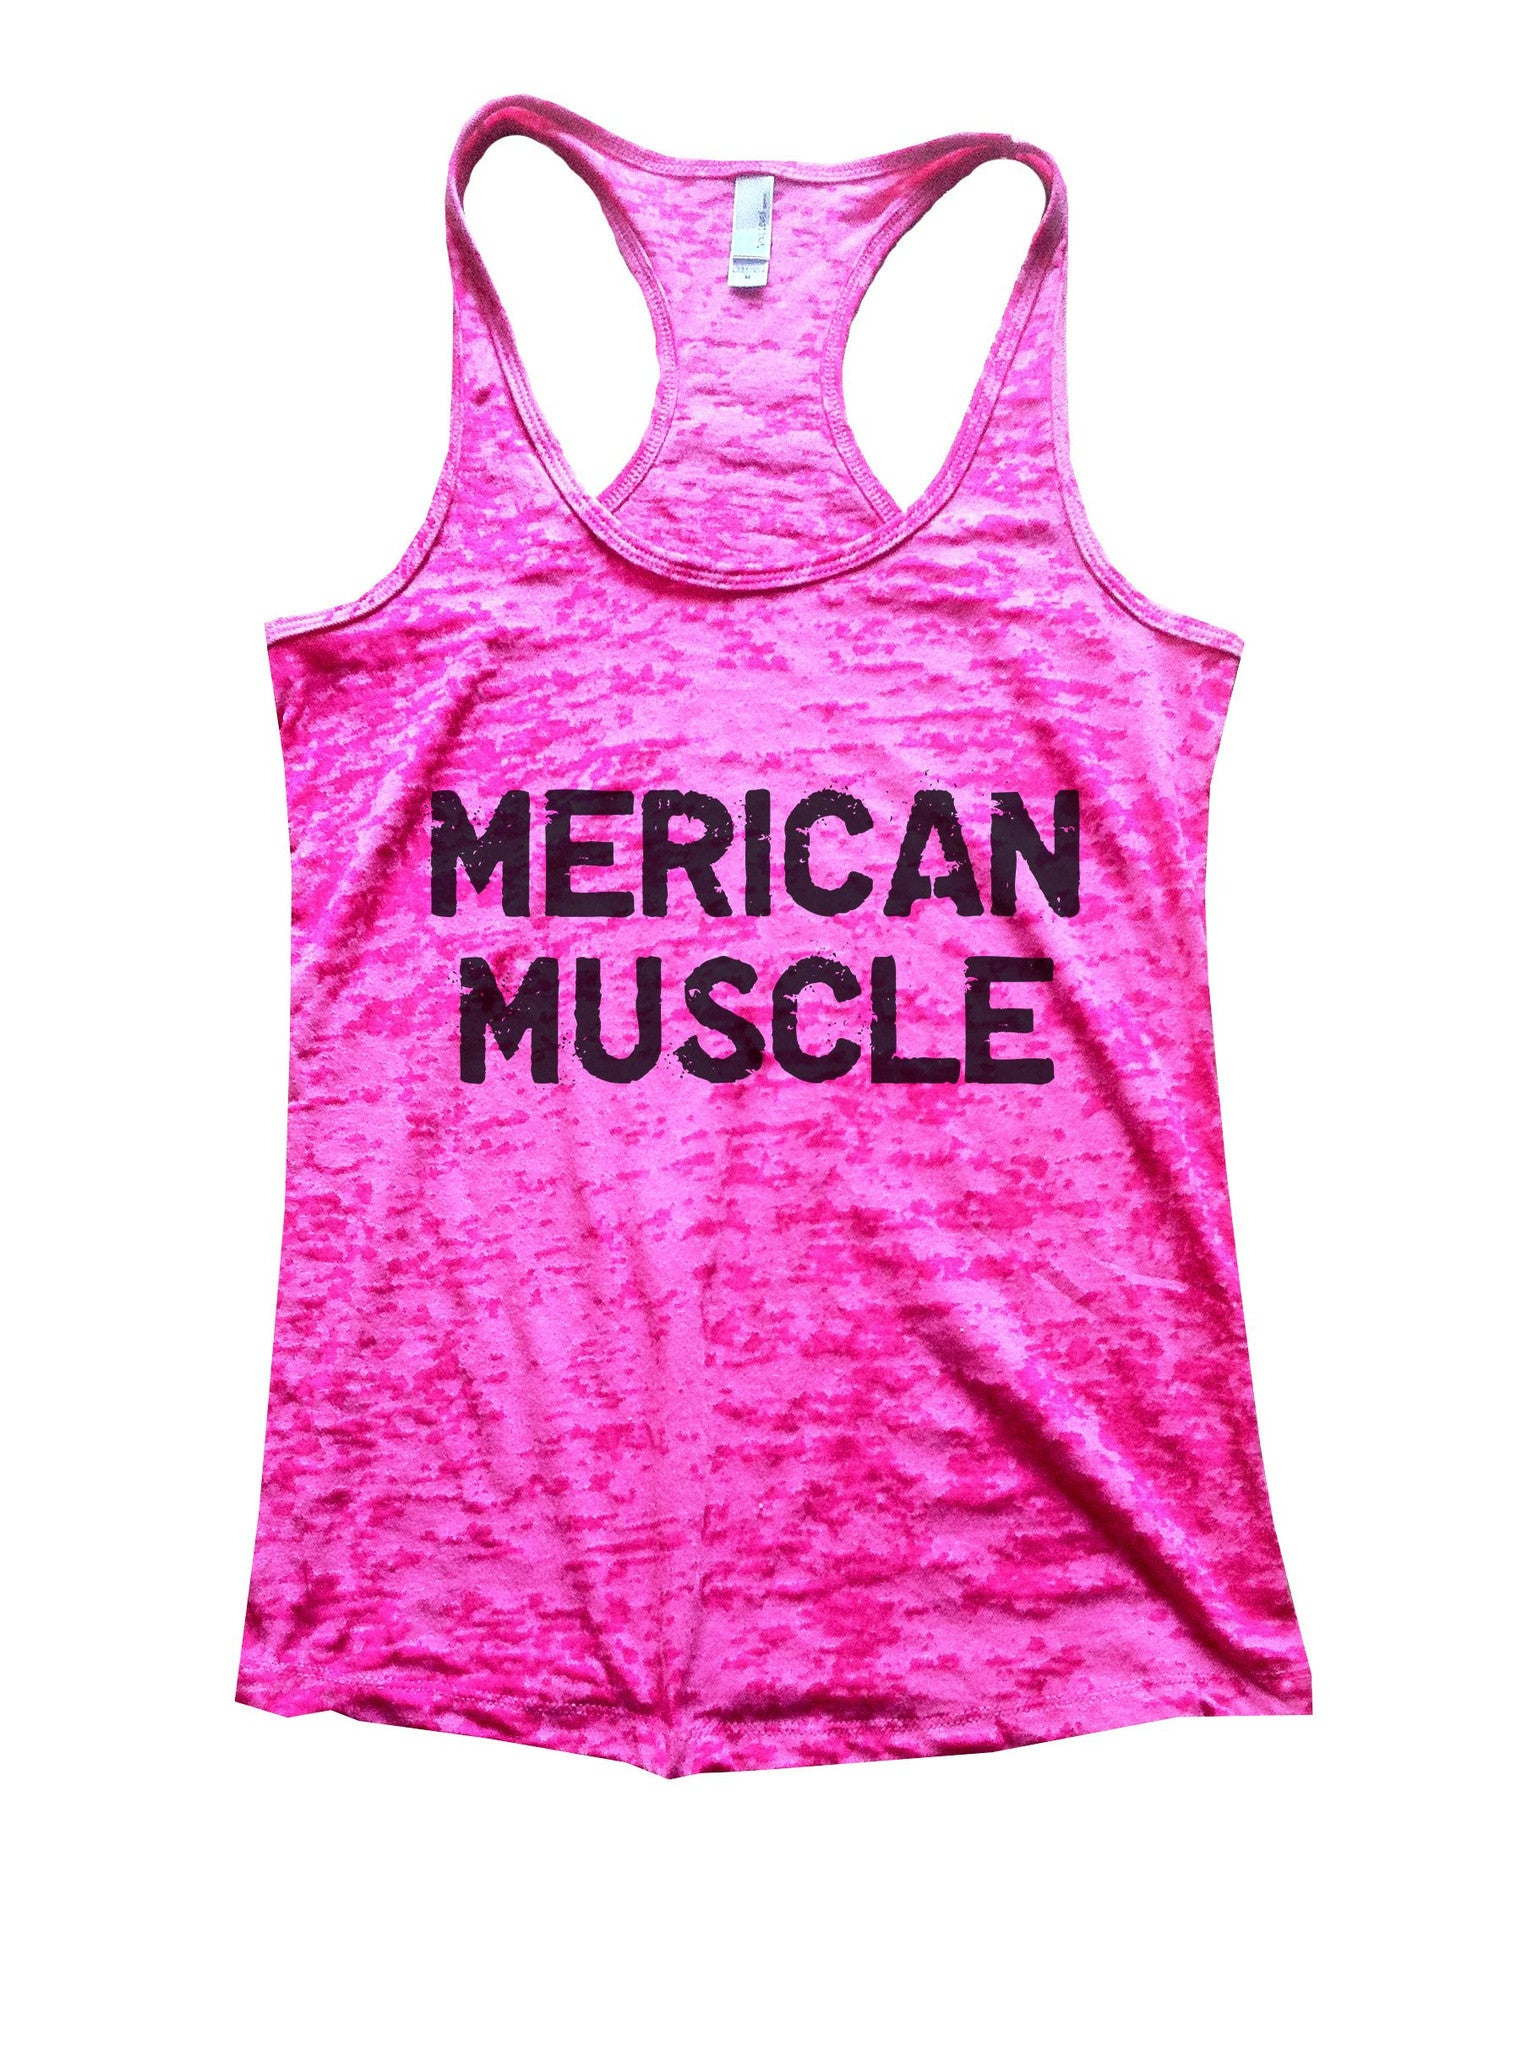 Merican Muscle Burnout Tank Top By BurnoutTankTops.com - 1022 - Funny Shirts Tank Tops Burnouts and Triblends  - 5